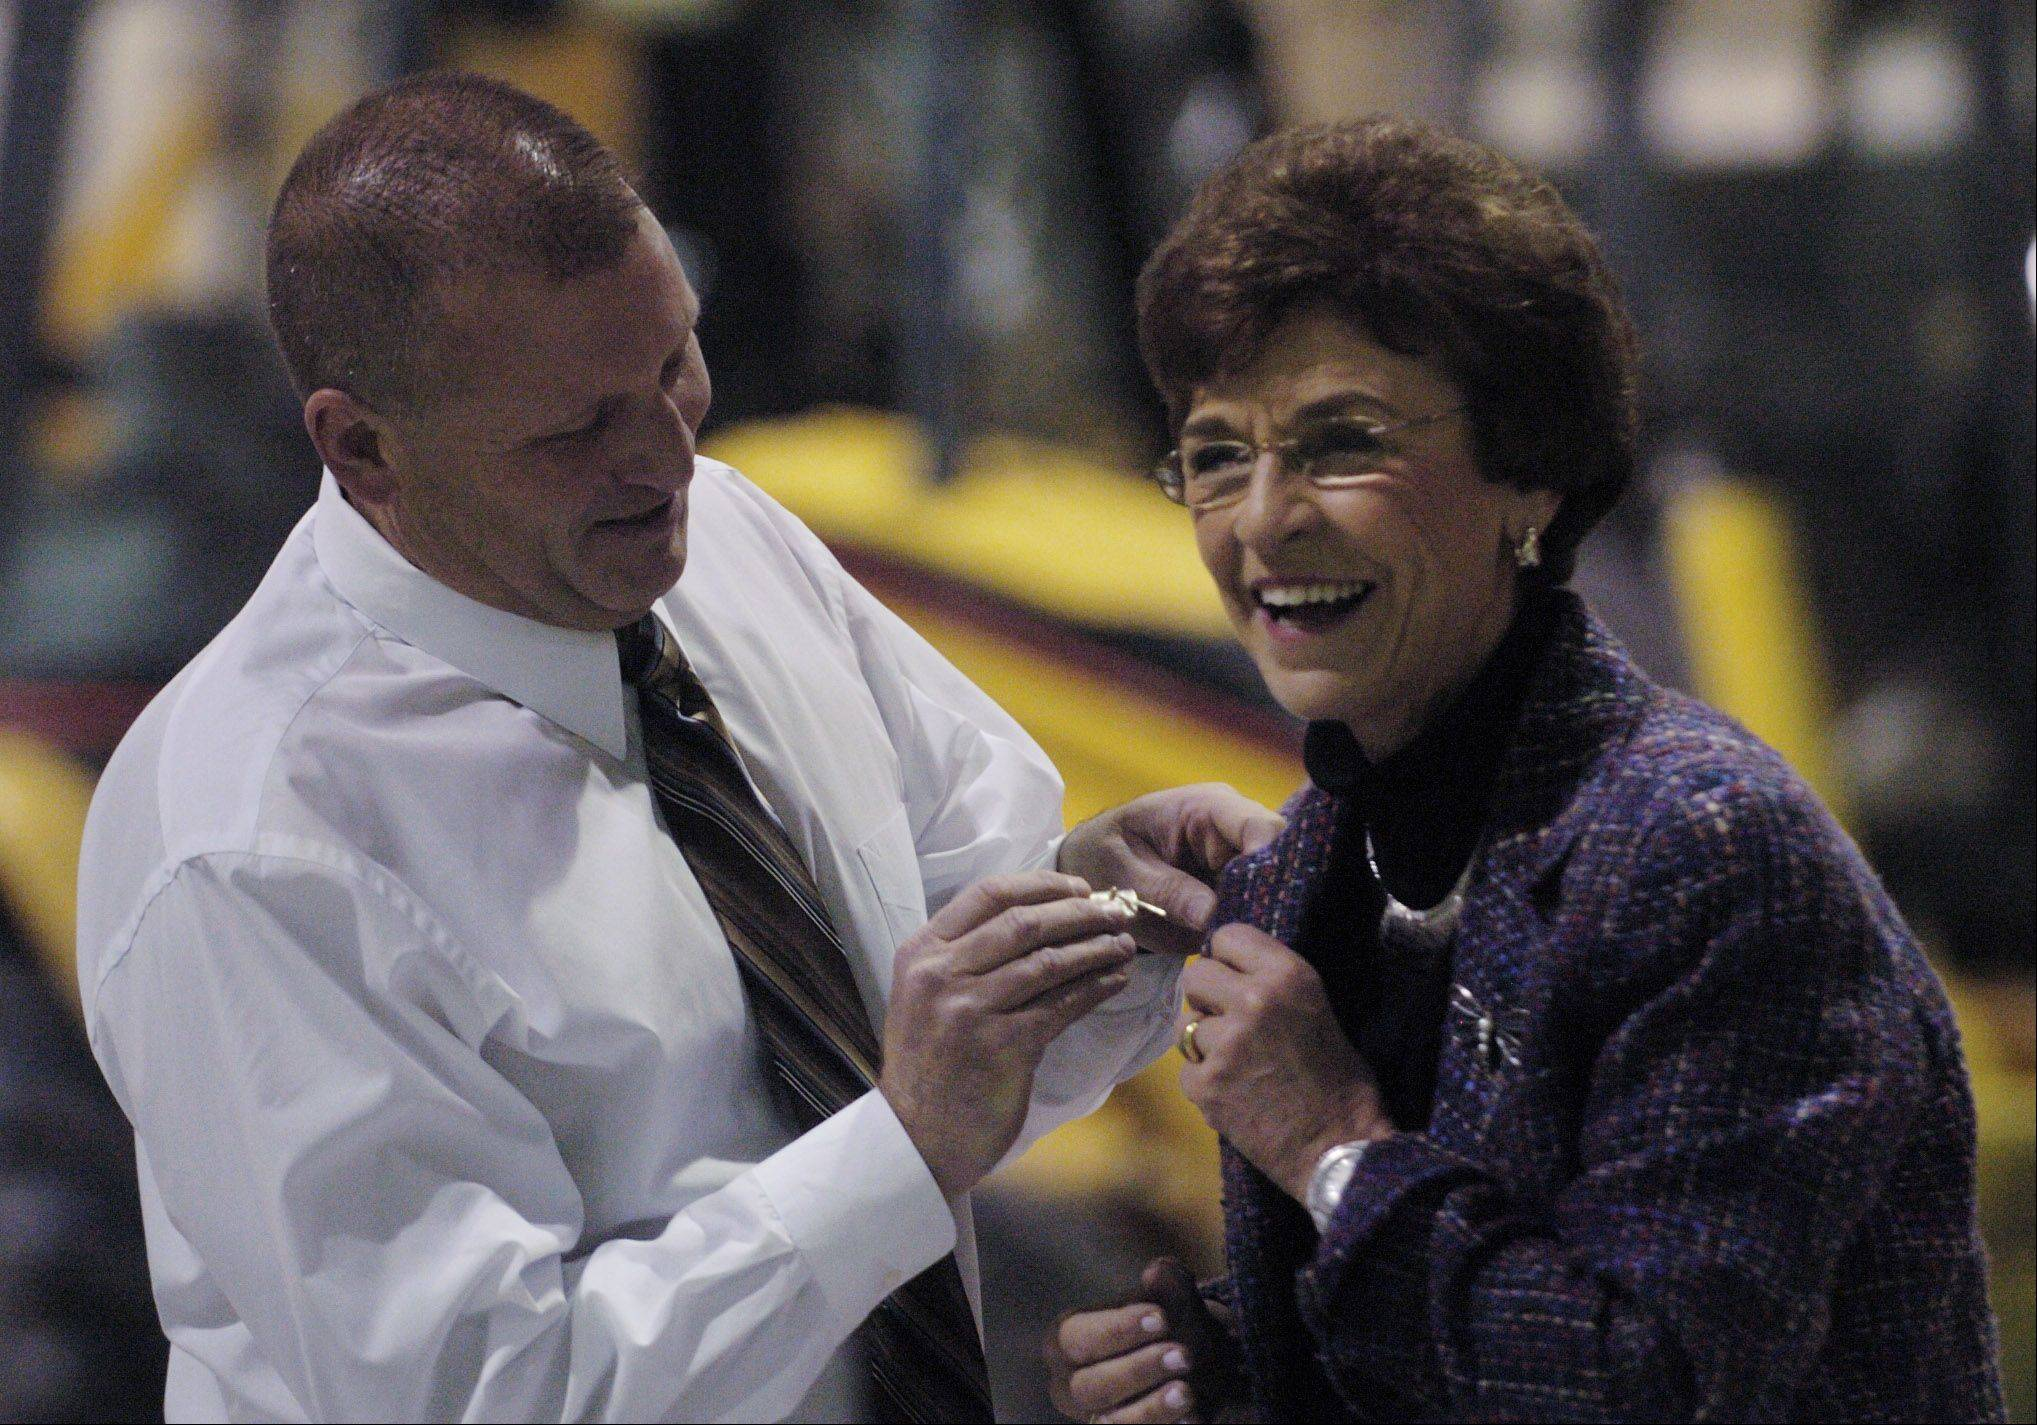 Director of Public Works Scott Shirley pins a broach on the lapel of Arlington Heights Mayor Arlene Mulder.